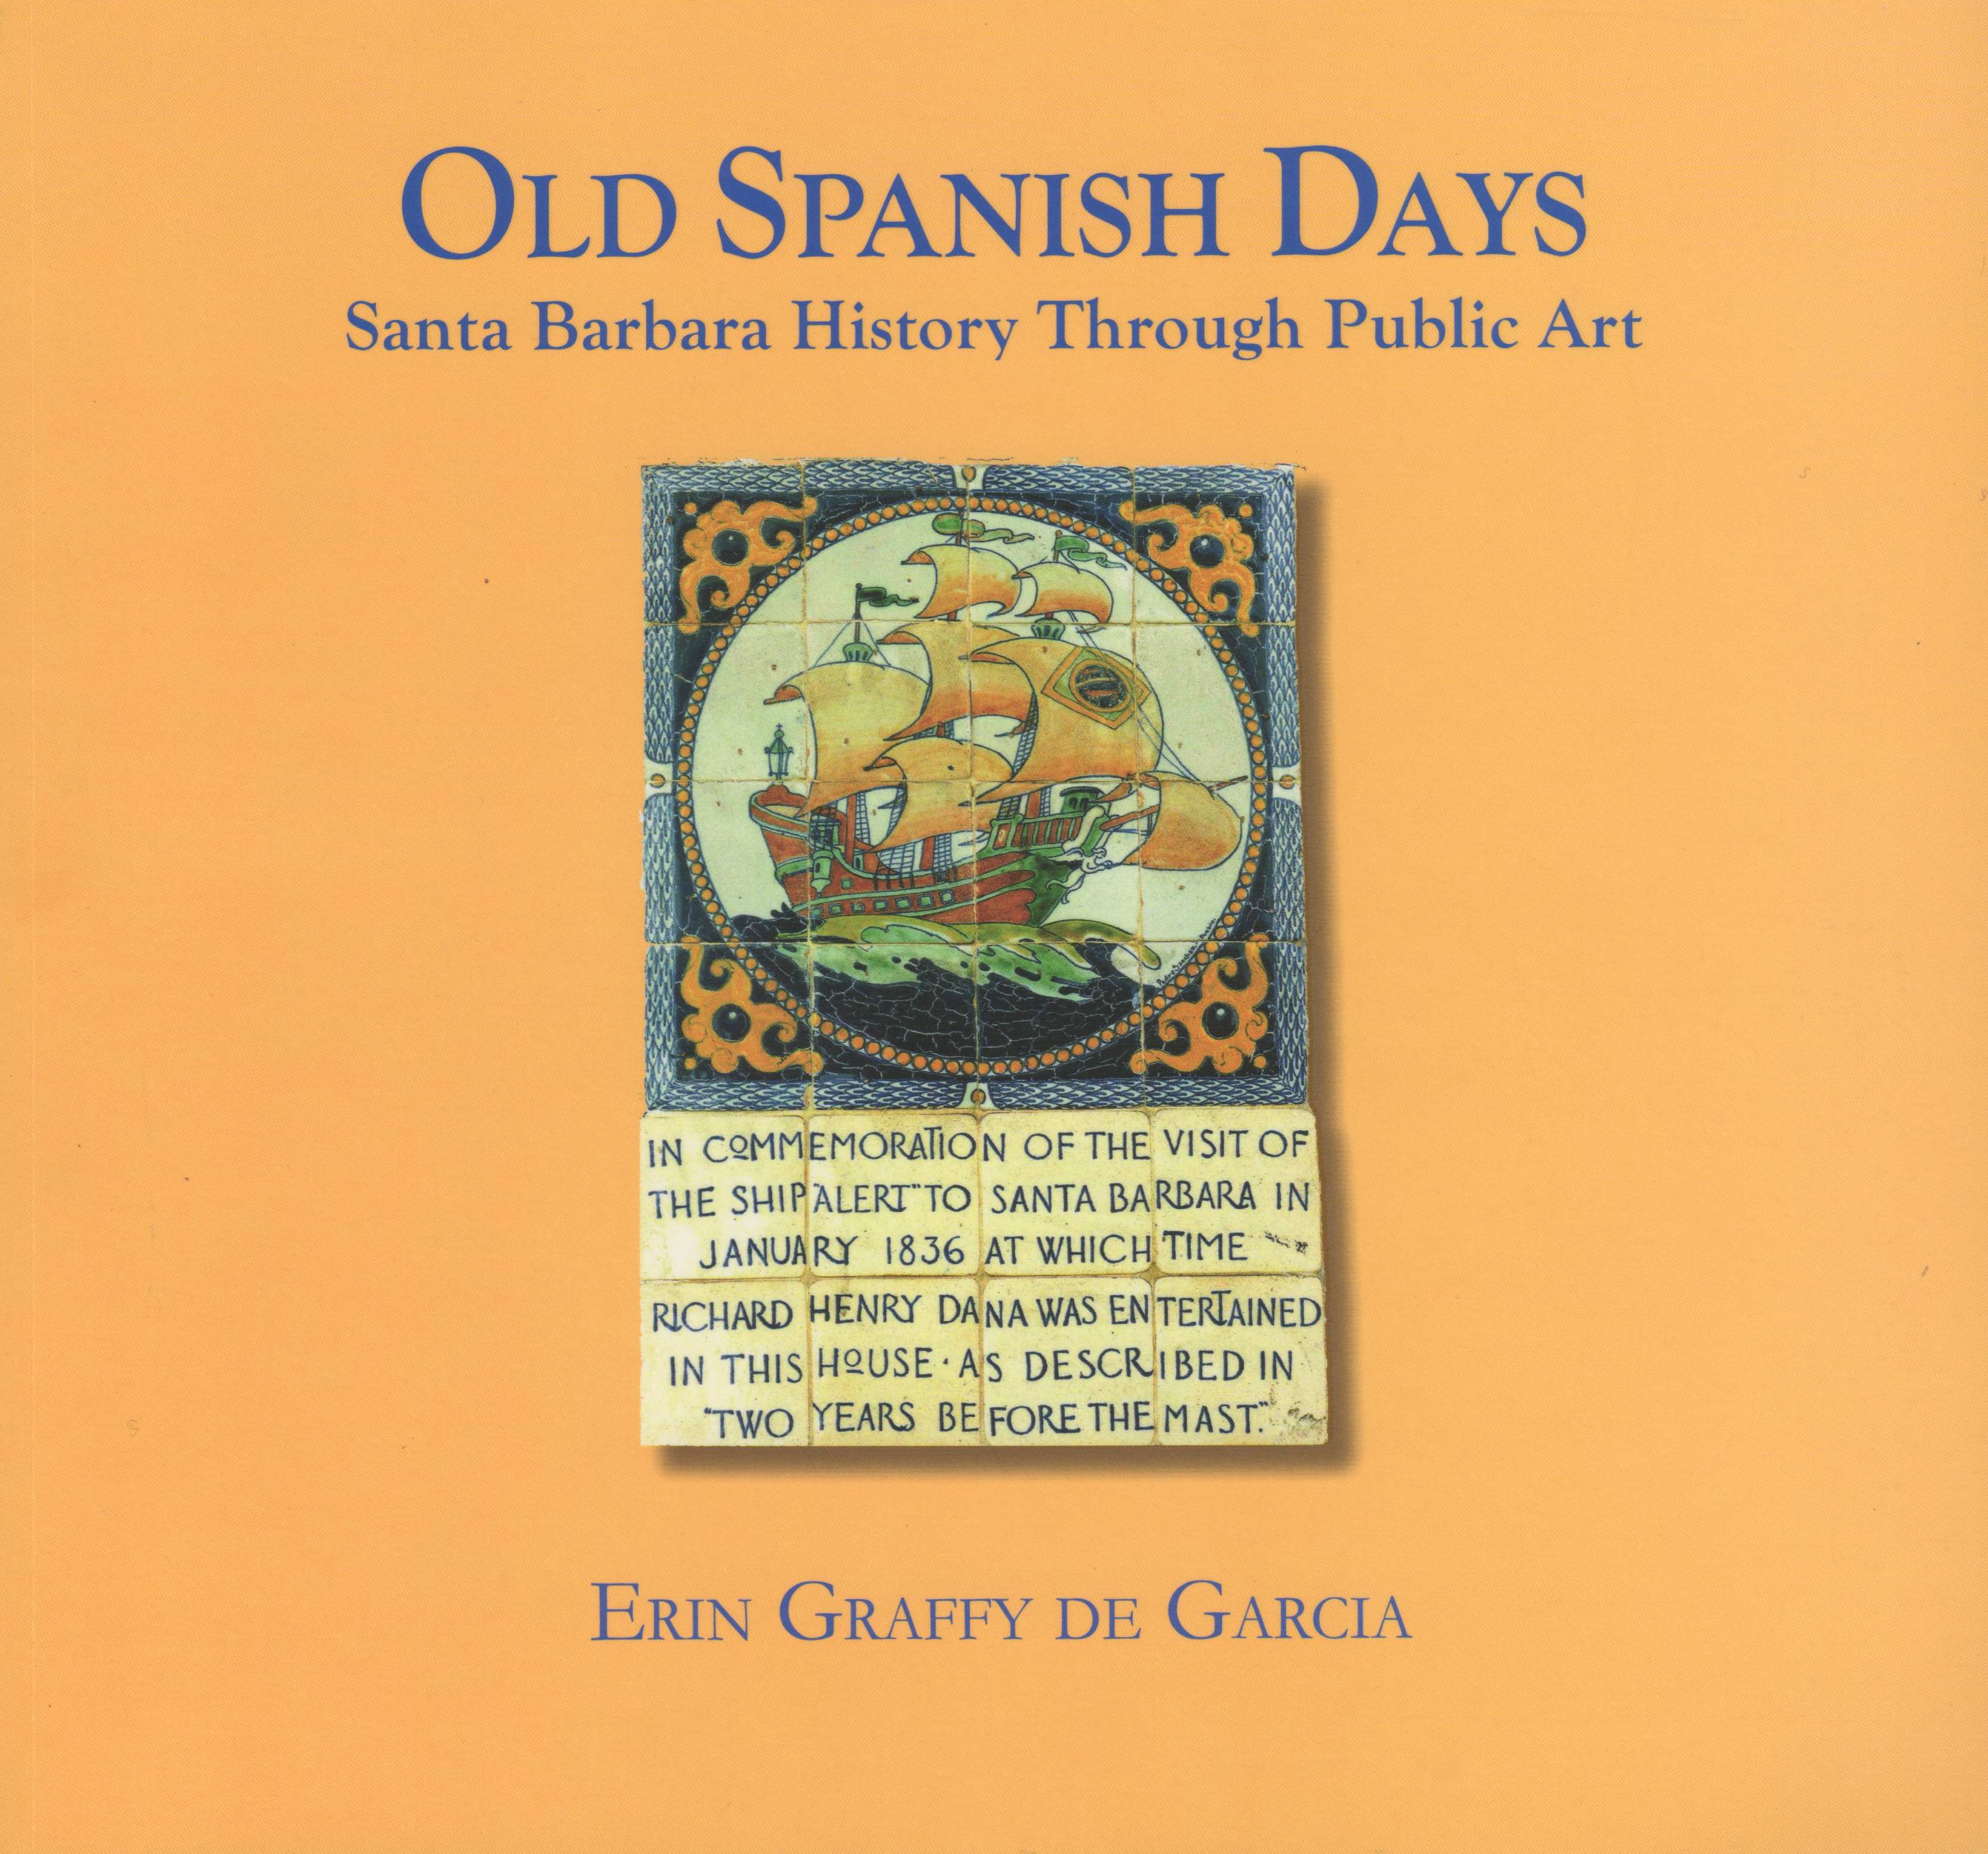 Old Spanish Days Santa Barbara History through Public Art, by Erin Erin Graffy de García, Soft Cover